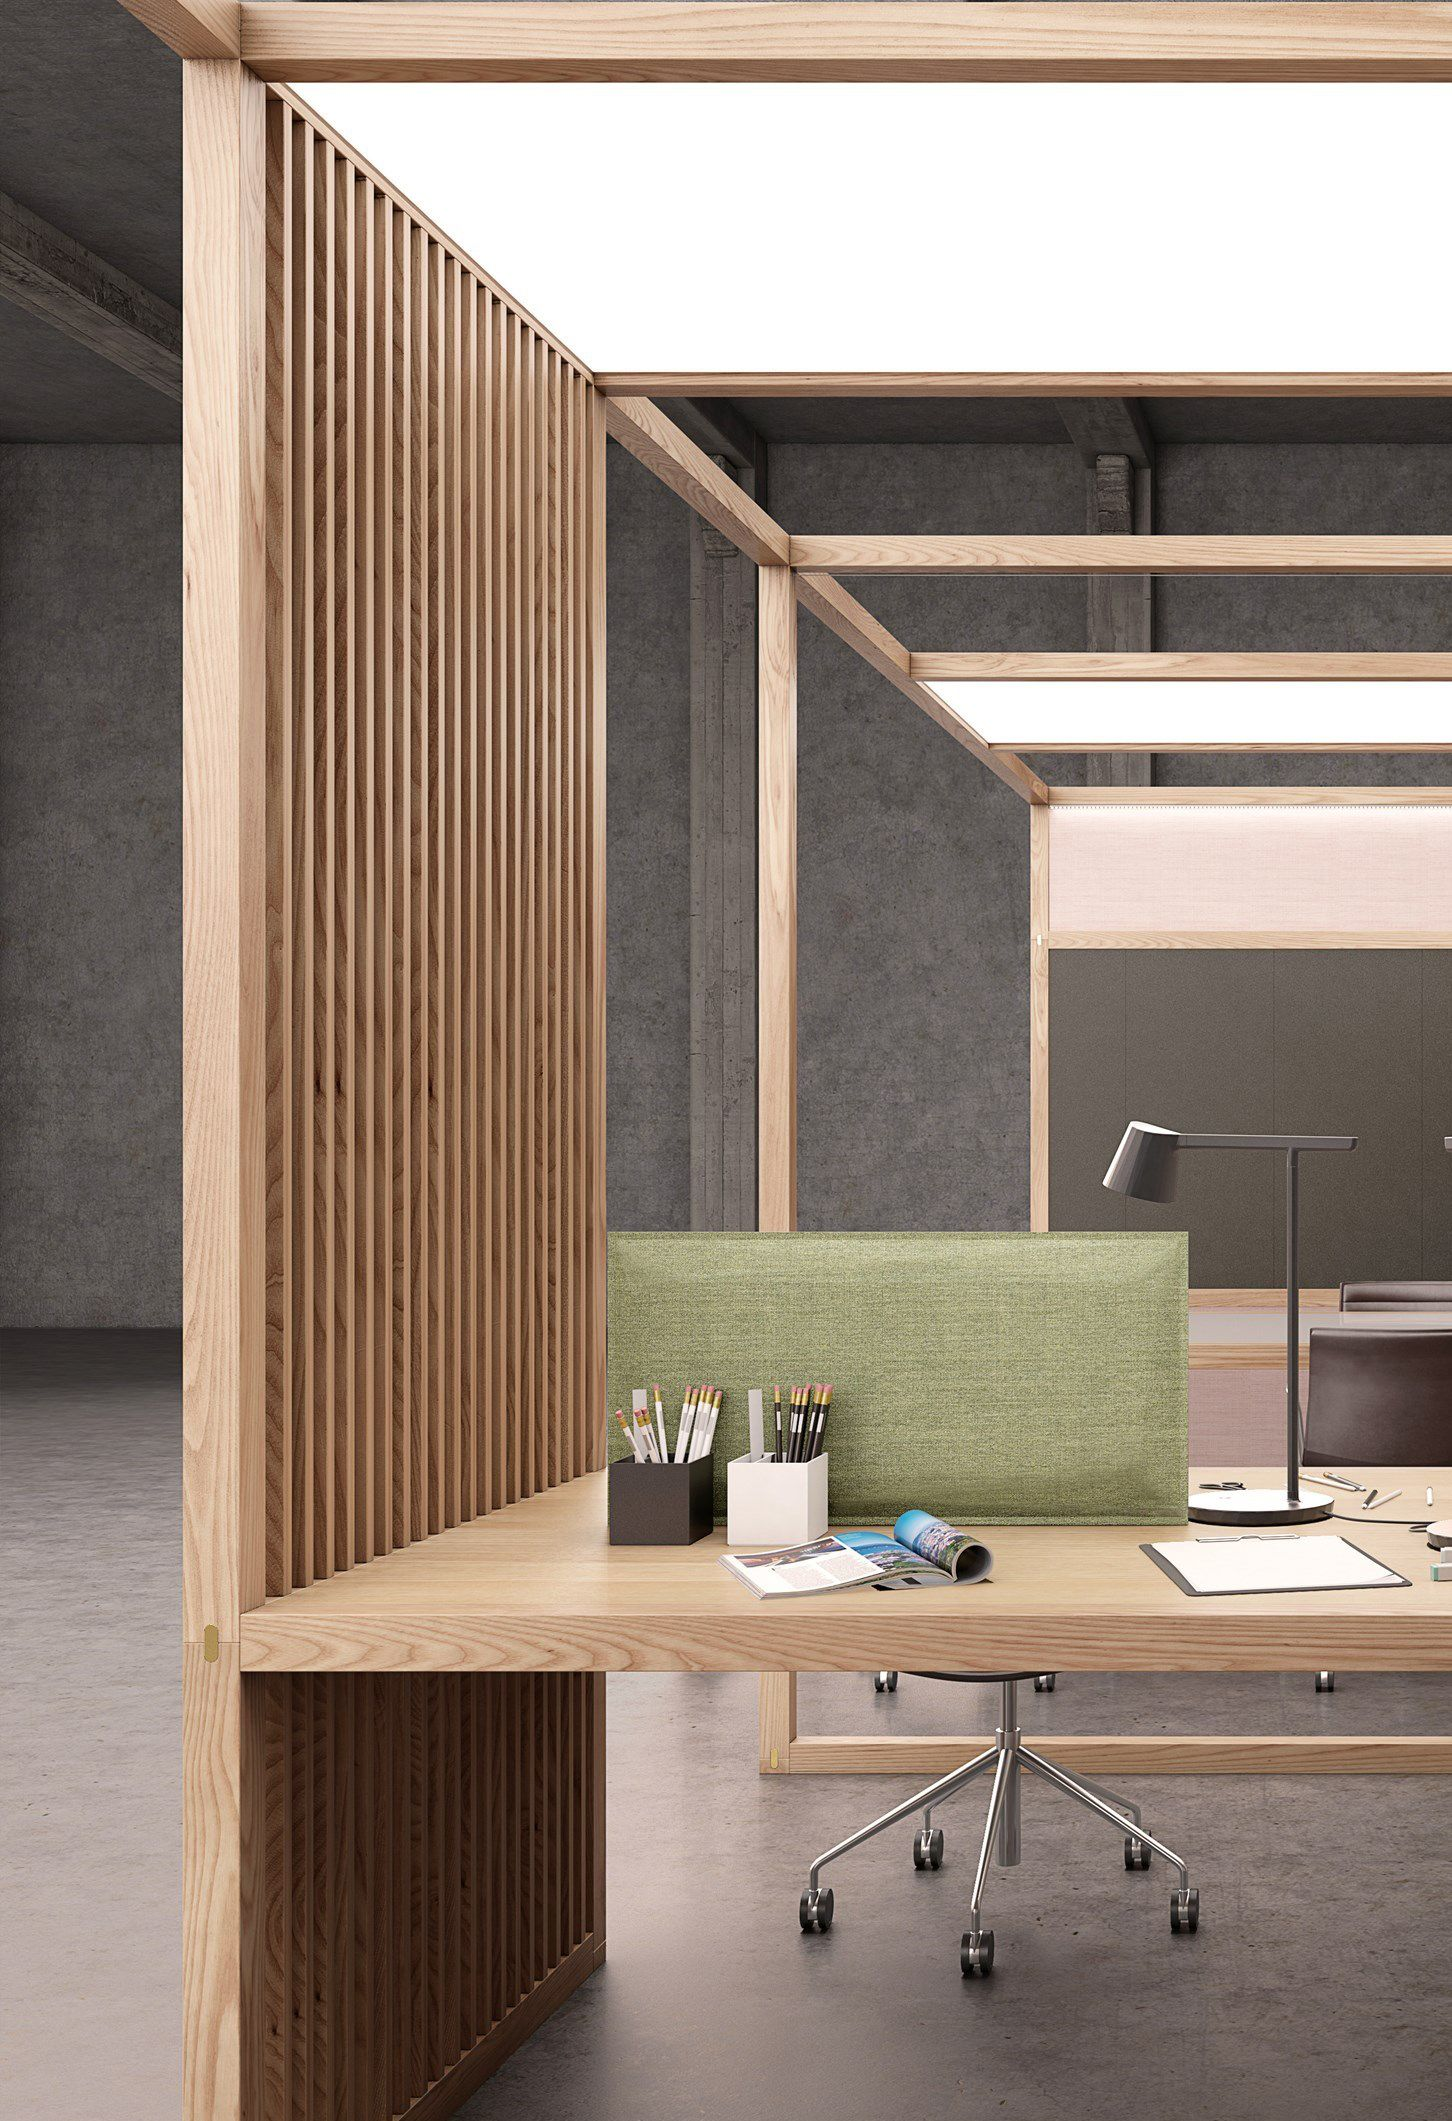 6x6 office multiple office workstation for open space